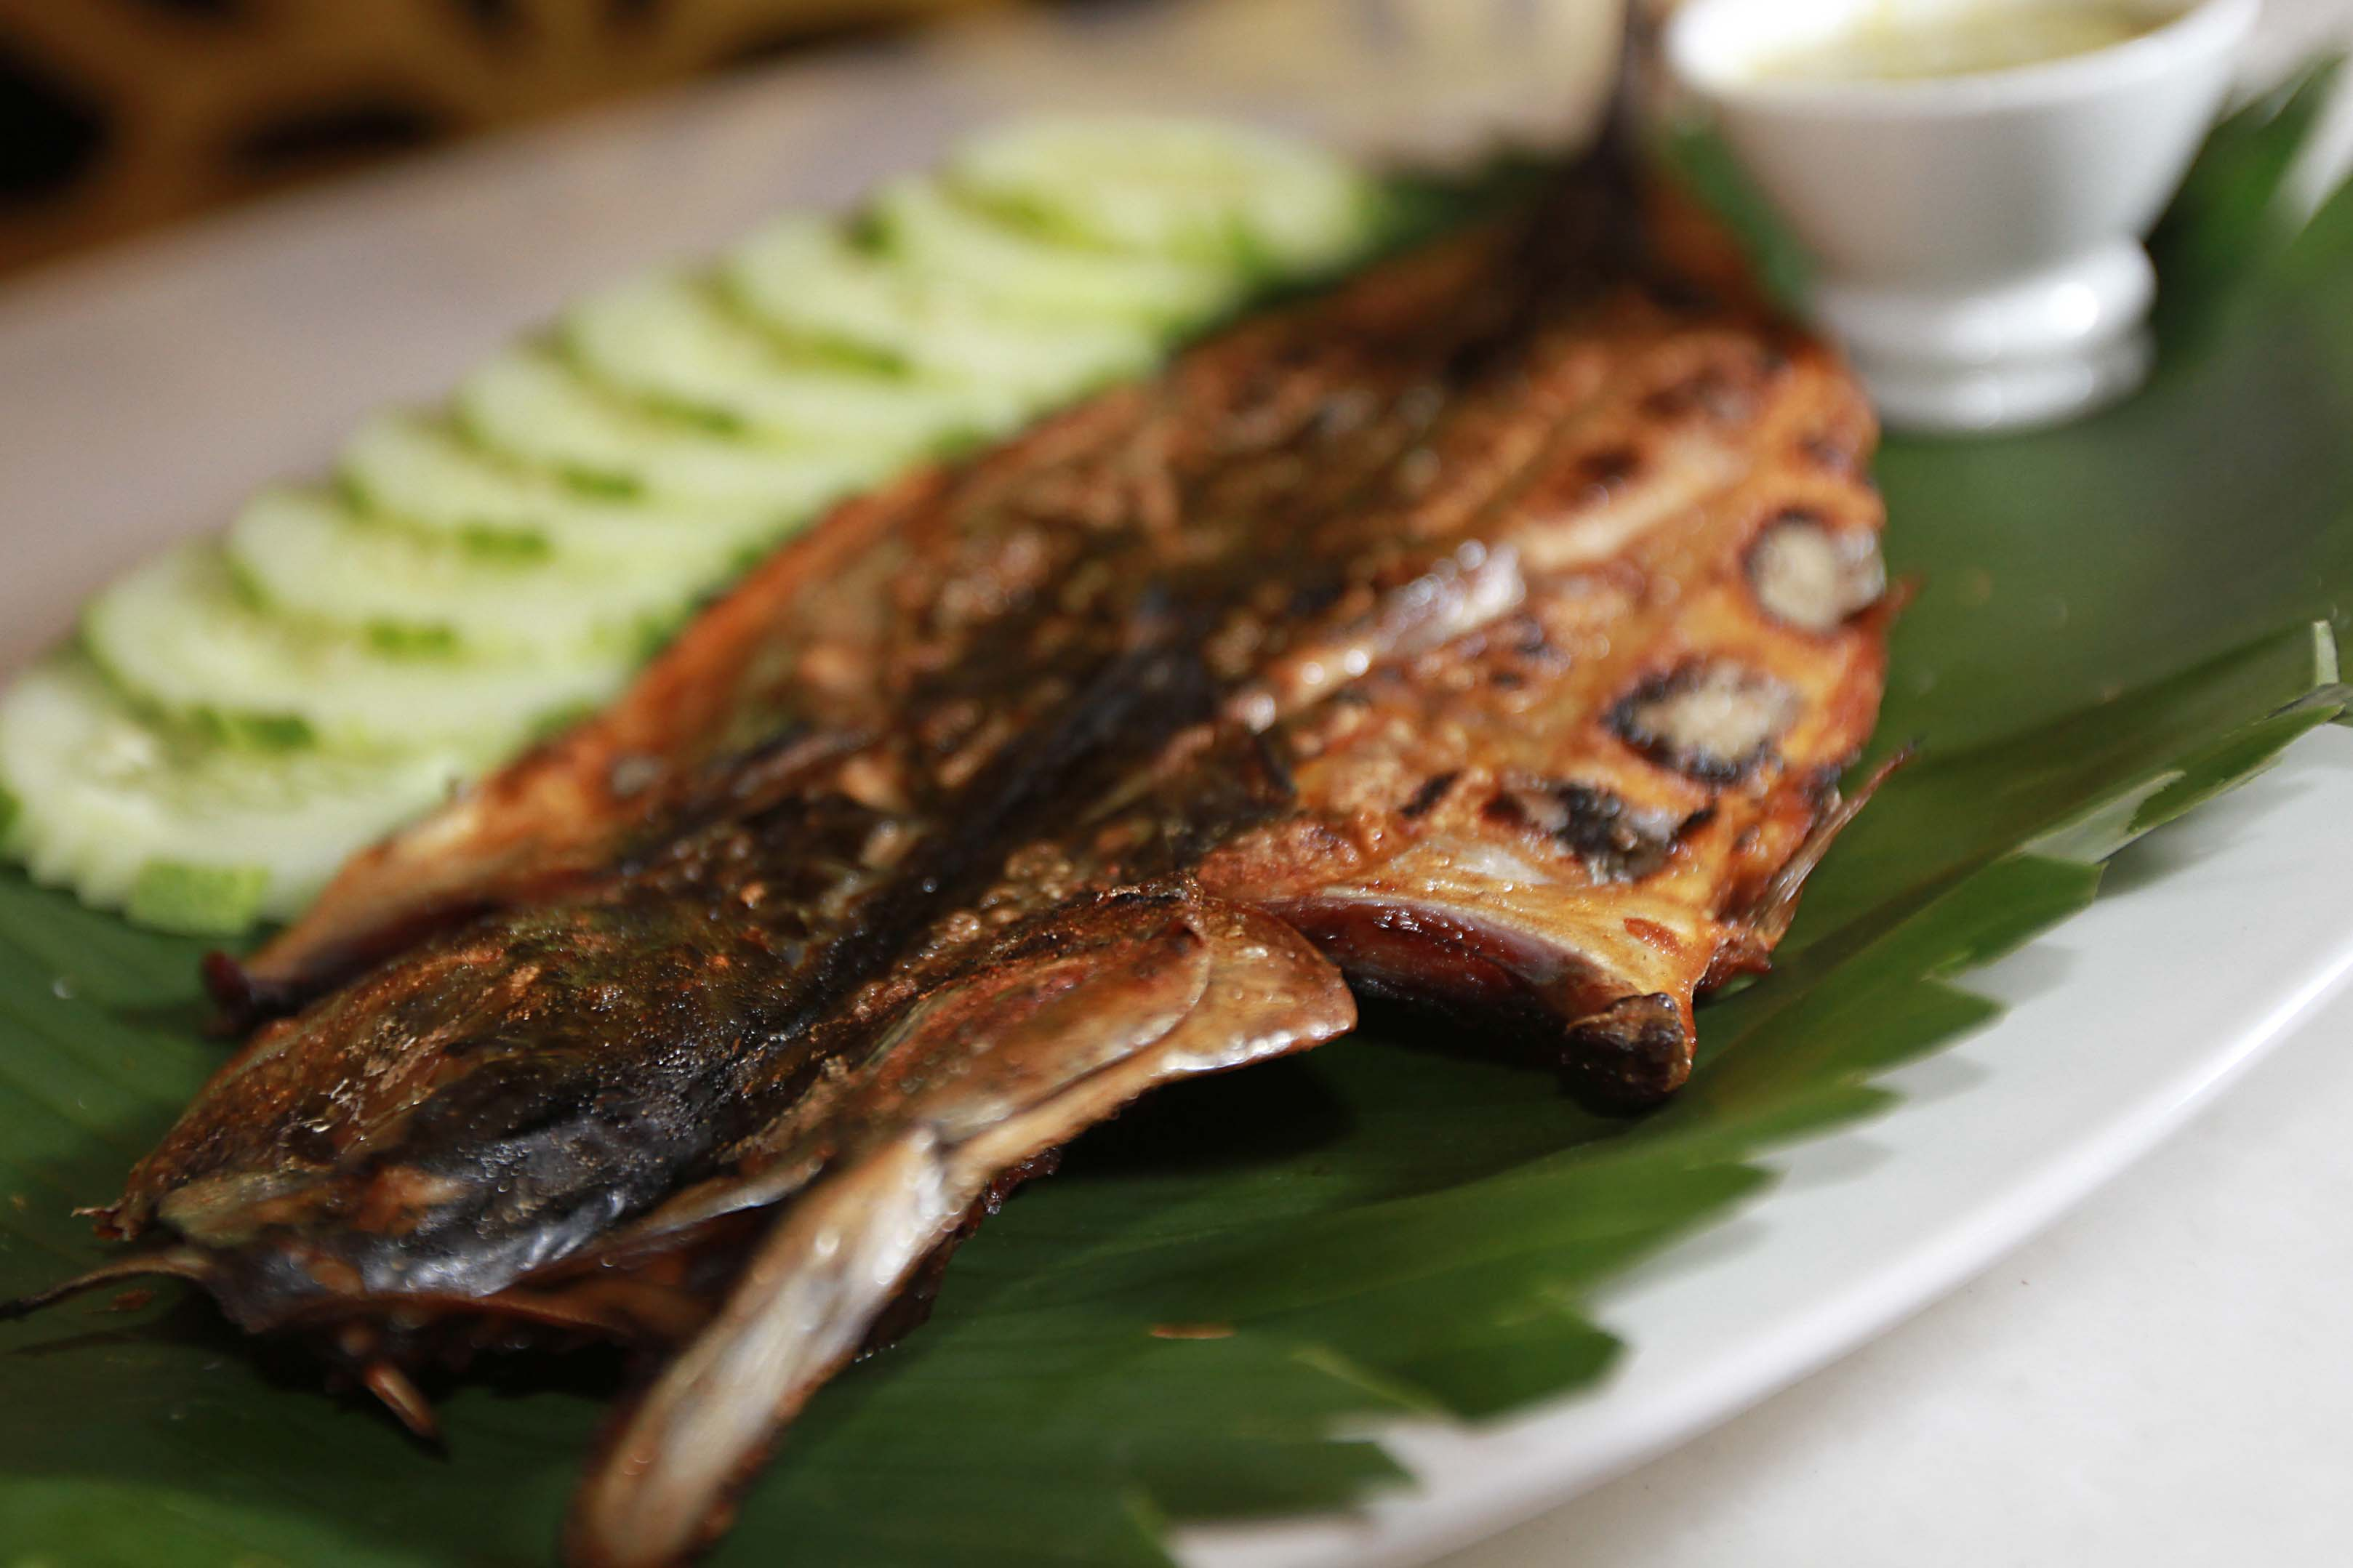 Grilled to perfection: Barbecued saba fish goes well with sambal dip.